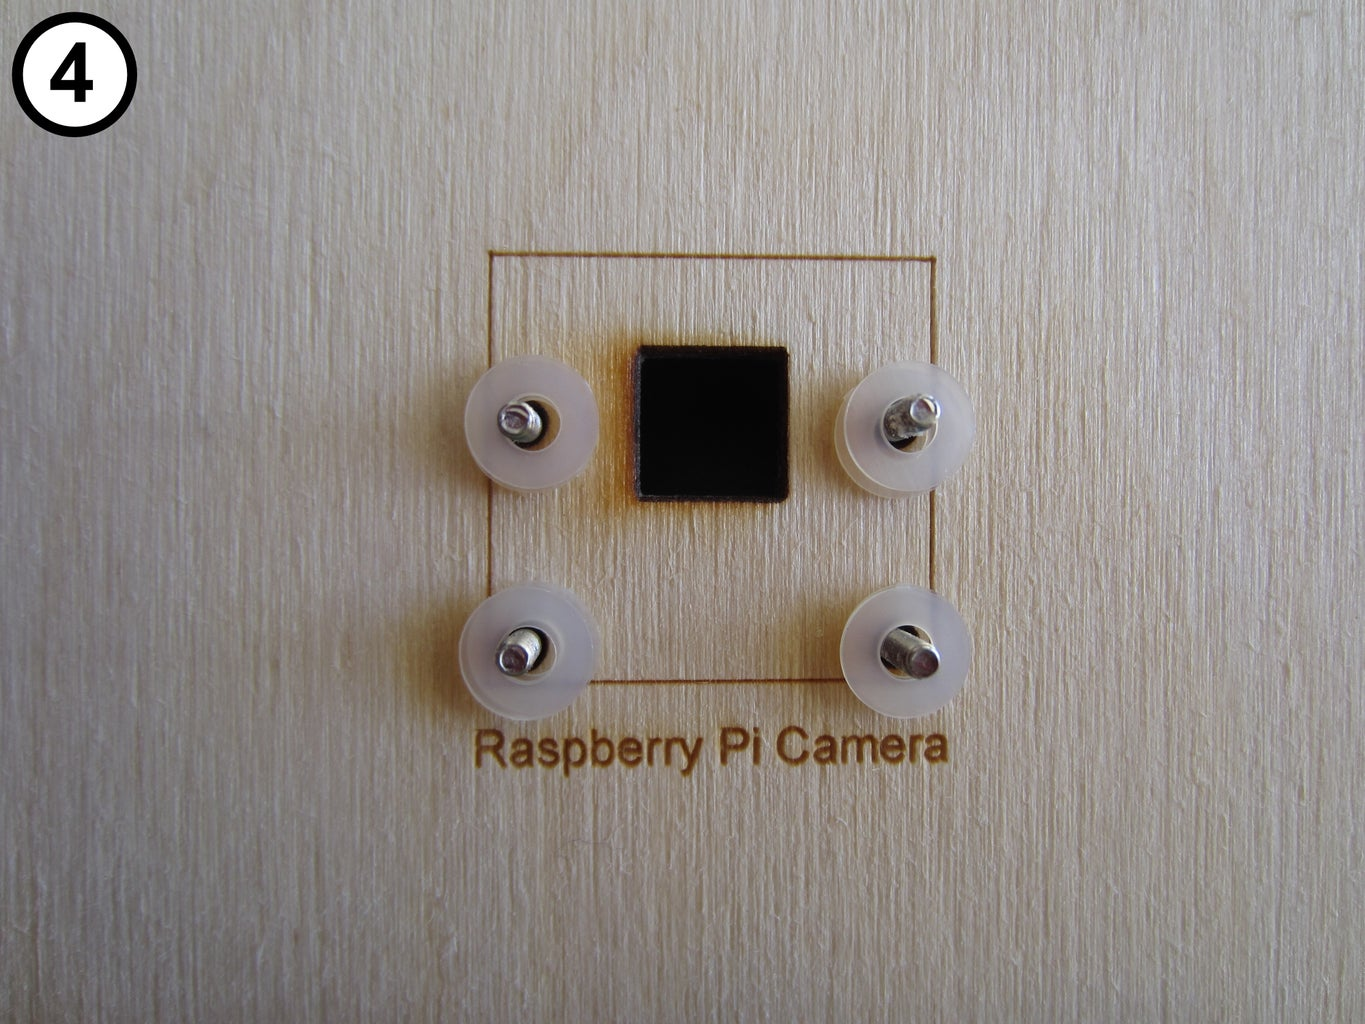 Mount the Camera on the Front Panel